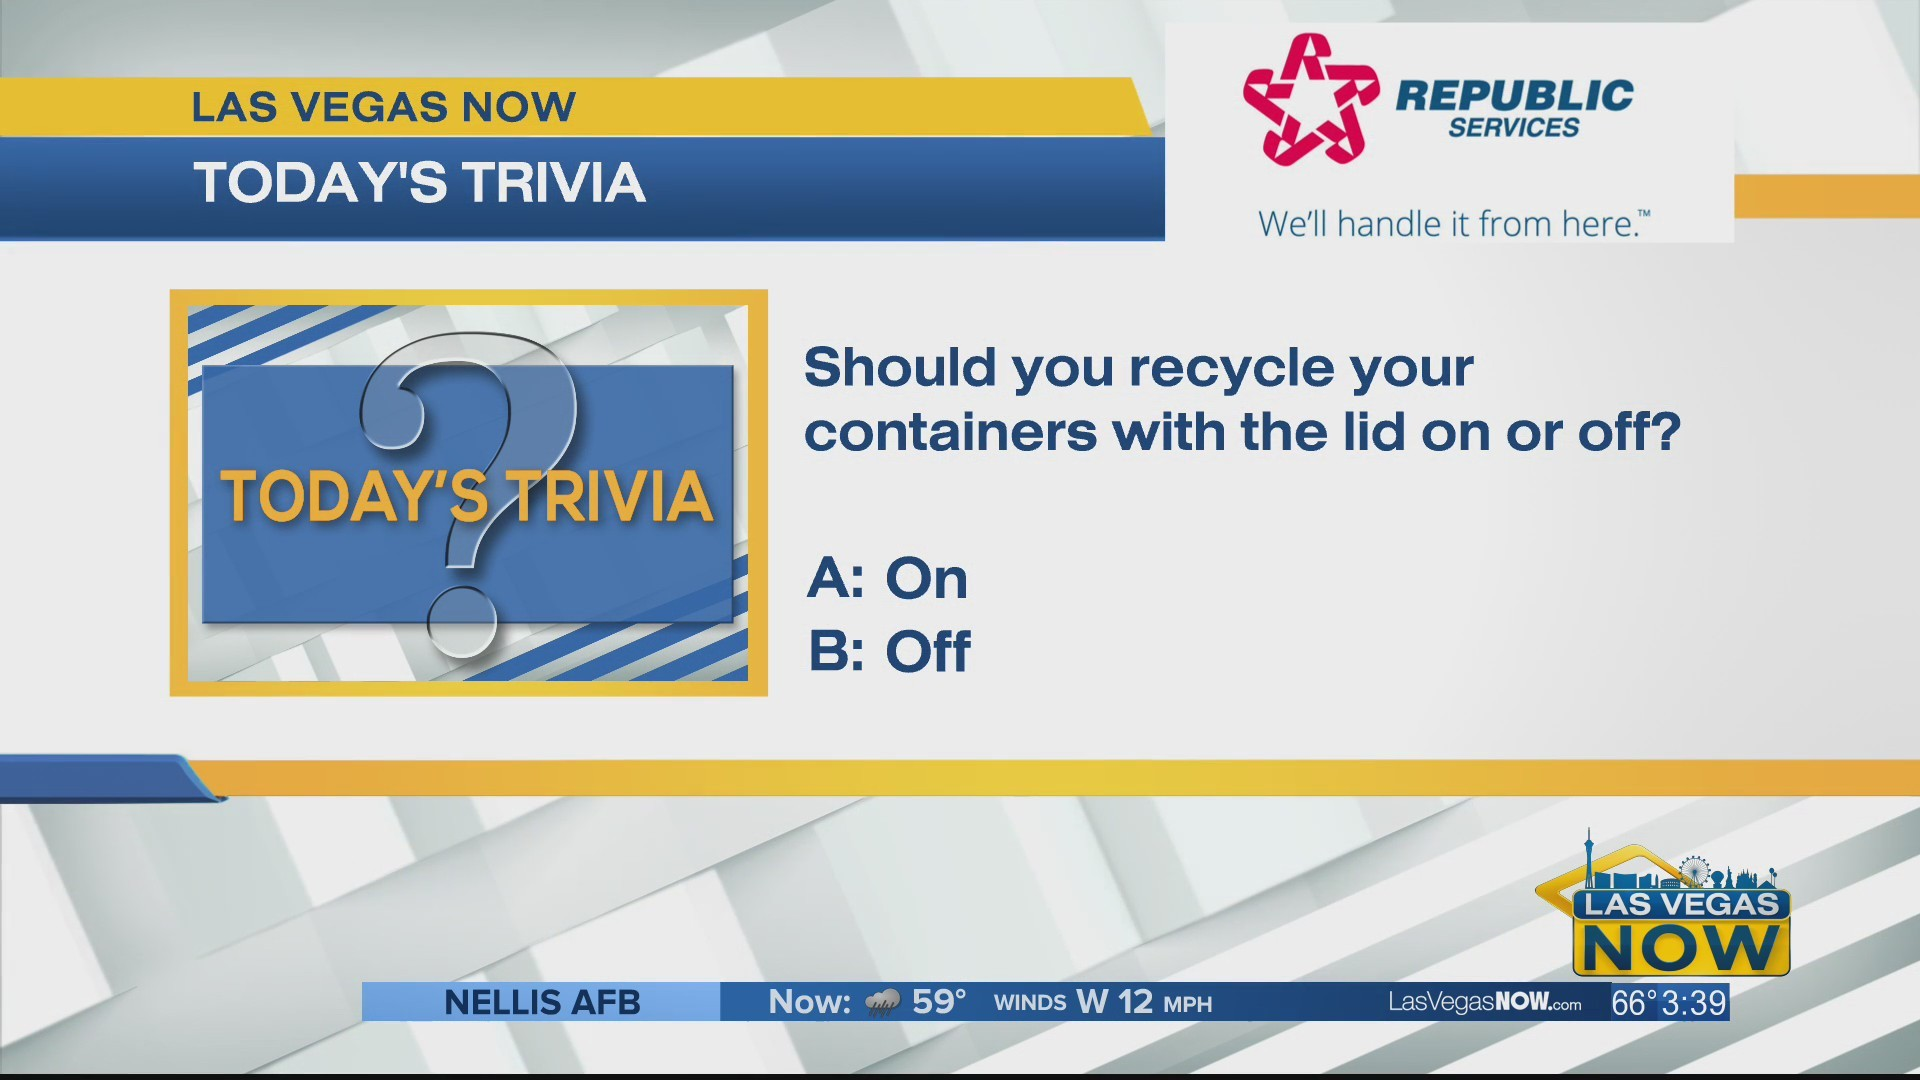 Should you recycle containers with the lid on or off?